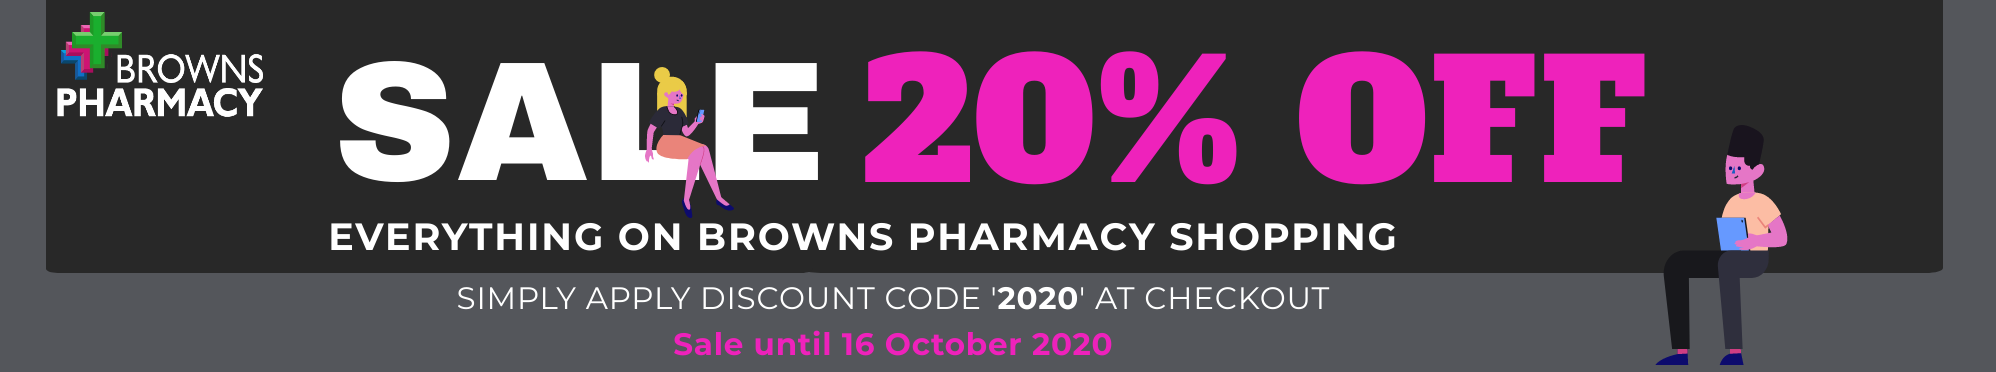 20% off all products on browns pharmacy shopping